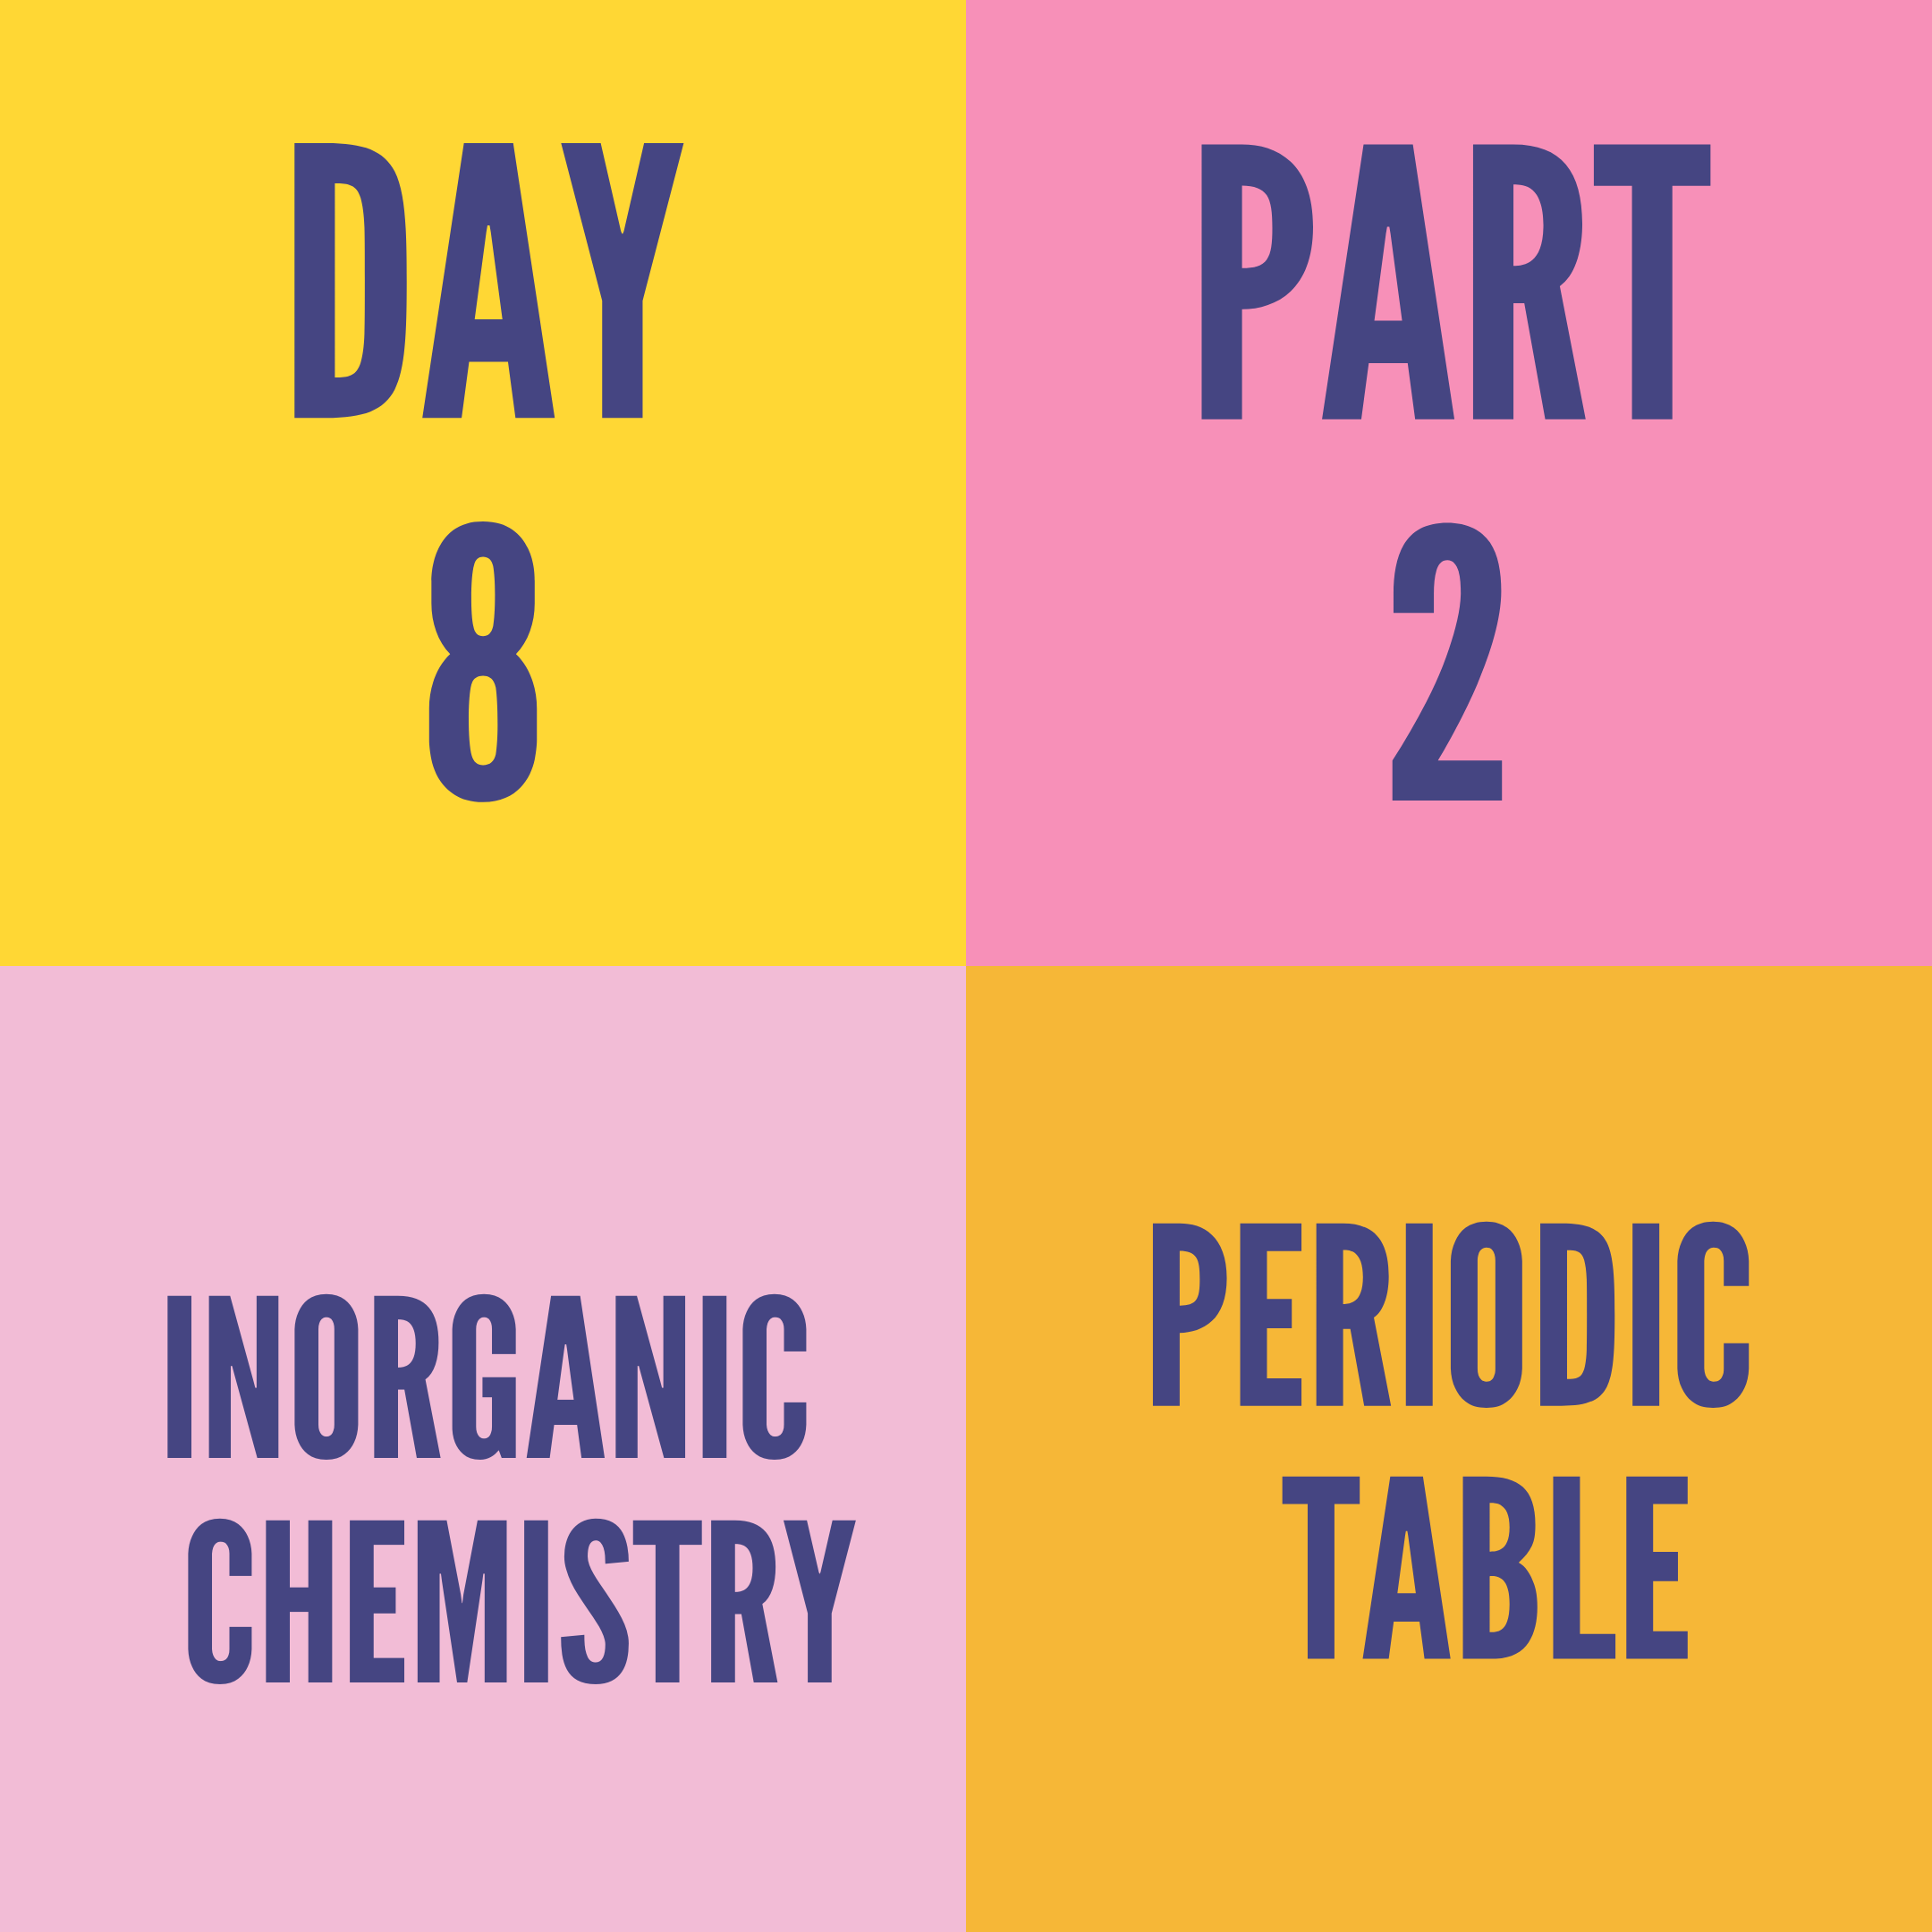 DAY-8 PART-2 PERIODIC TABLE